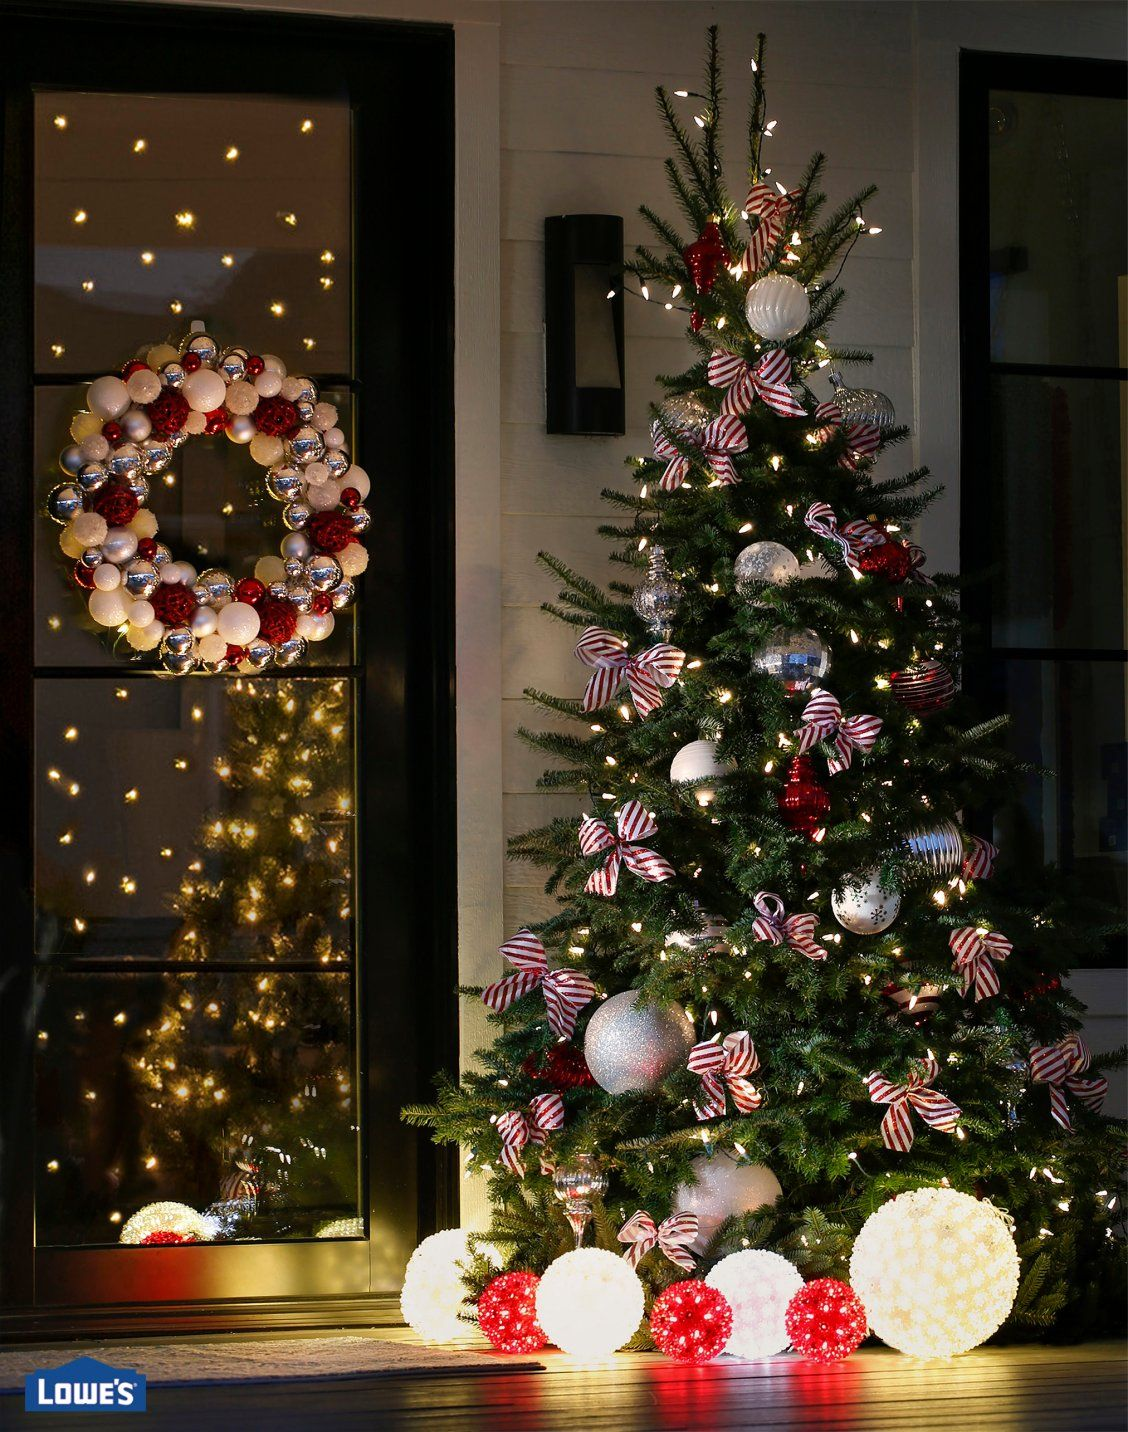 Sweeten Up Your Exterior Christmas Tree With Candy Cane Inspired Ribbons  And Oversized Ornaments In Red